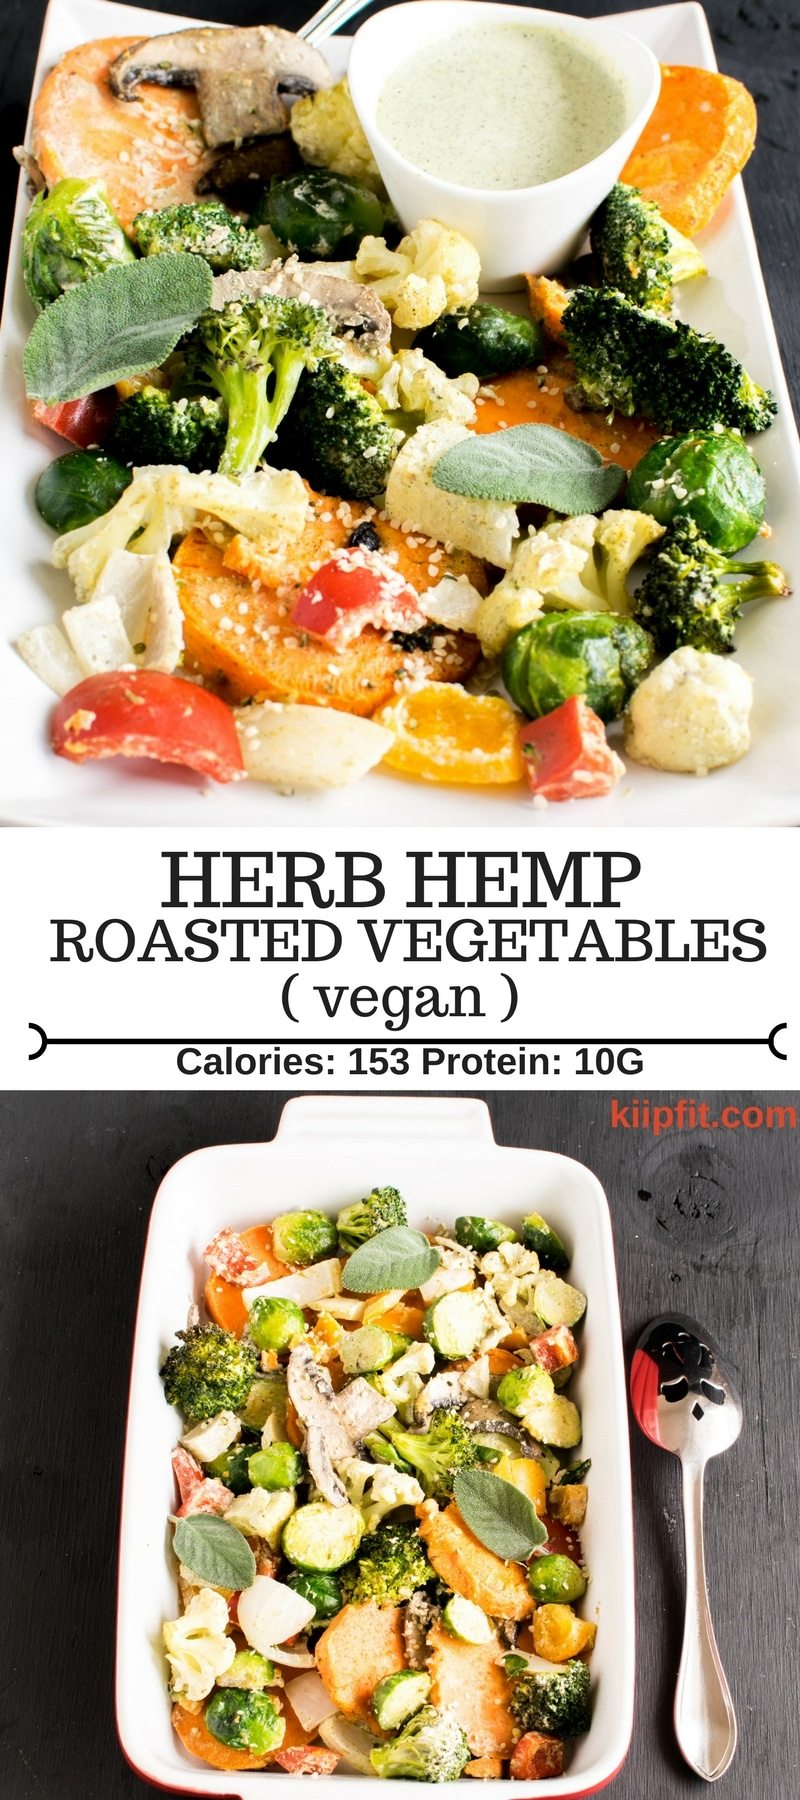 Vegan Herb Hemp Roasted Vegetables is made with fiber rich vegetables and tossed in mouthwatering hemp seed dressing. It's not only delicious but is also nutrient dense. This side dish is packed with absolutely desirable ingredients and is a crowd pleaser. Vegan Herb Hemp Roasted Vegetables is packed with fiber, protein, complex carbohydrates, good fats and lots of vitamins and minerals [ GF + Paleo ] kiipfit.com